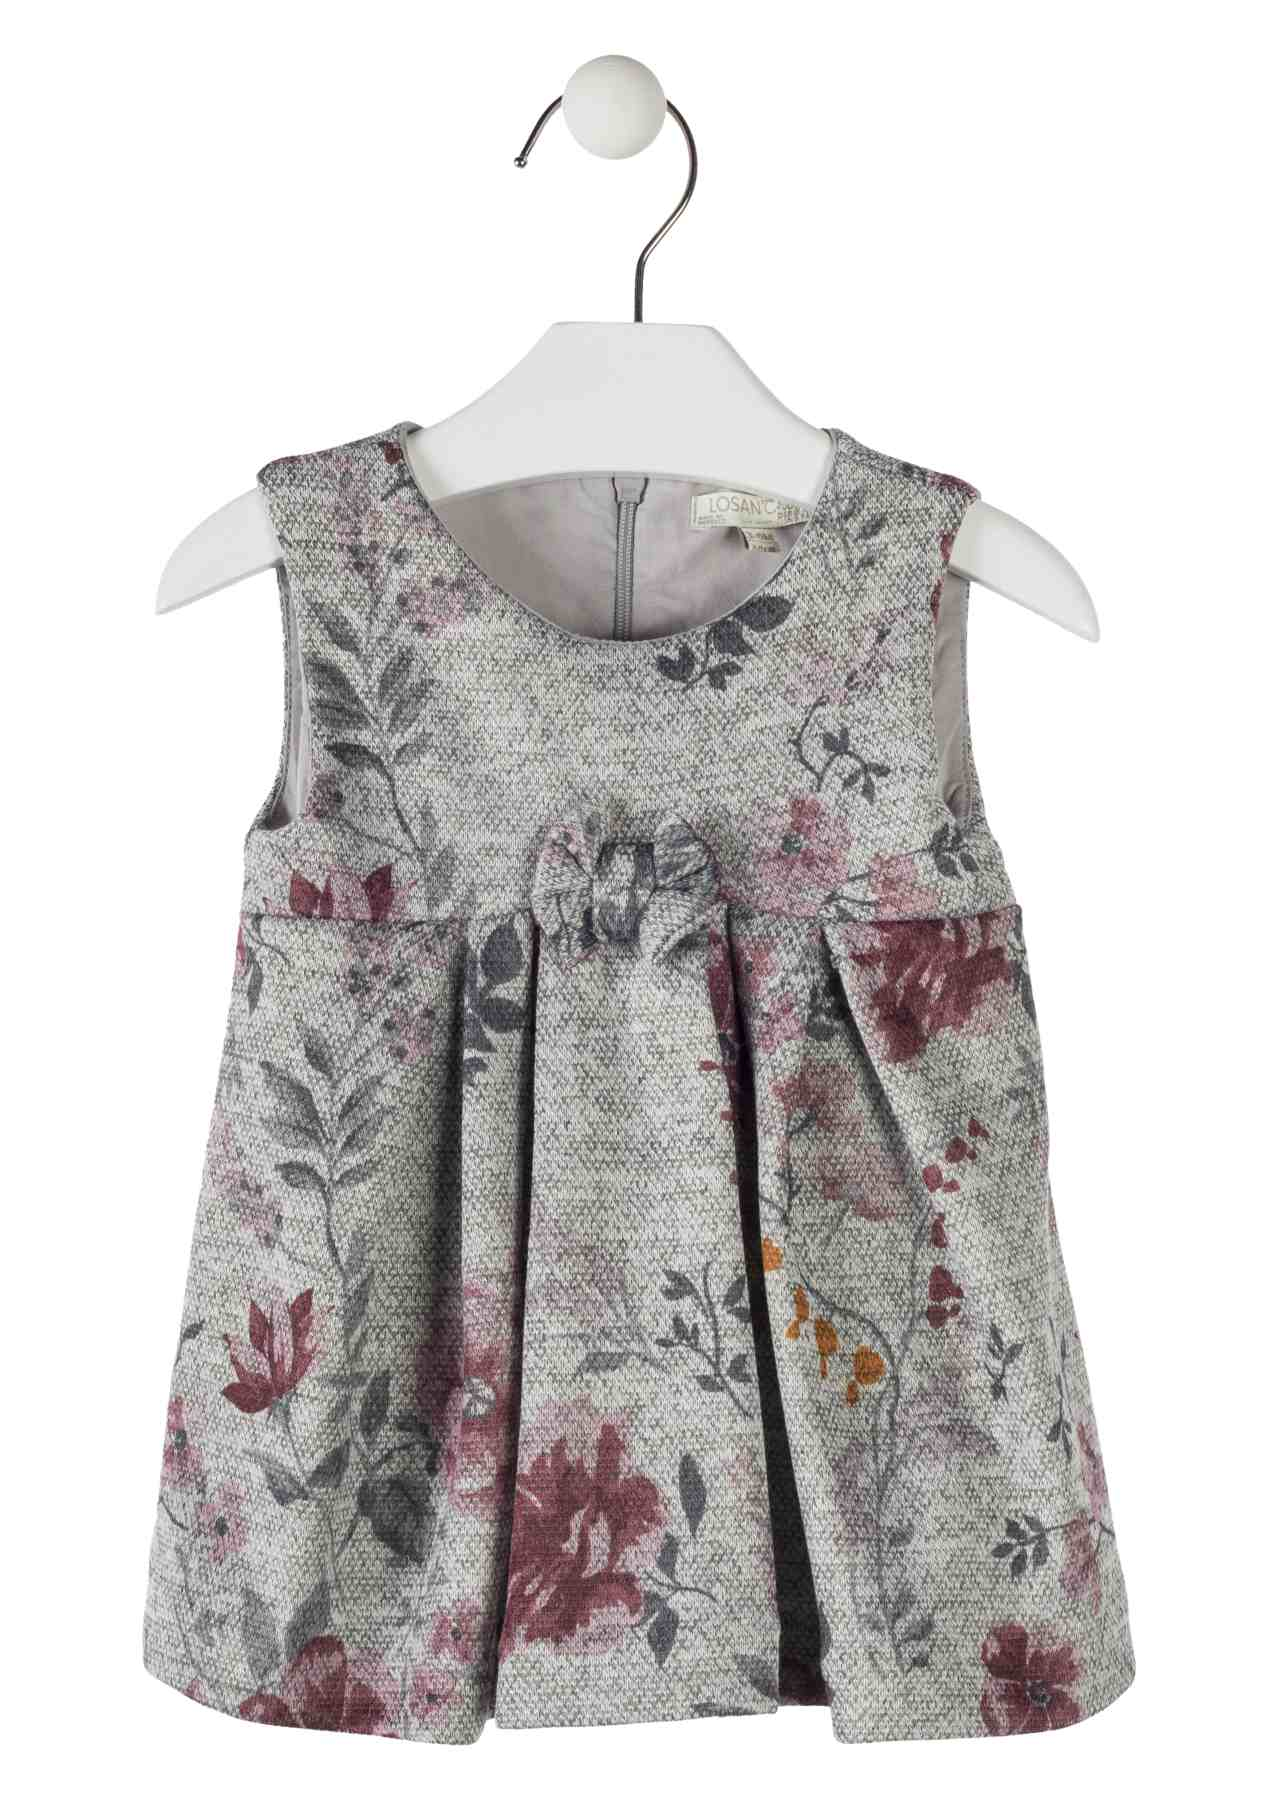 Floral Dress with Bow Detail - Lullaby's Boutique